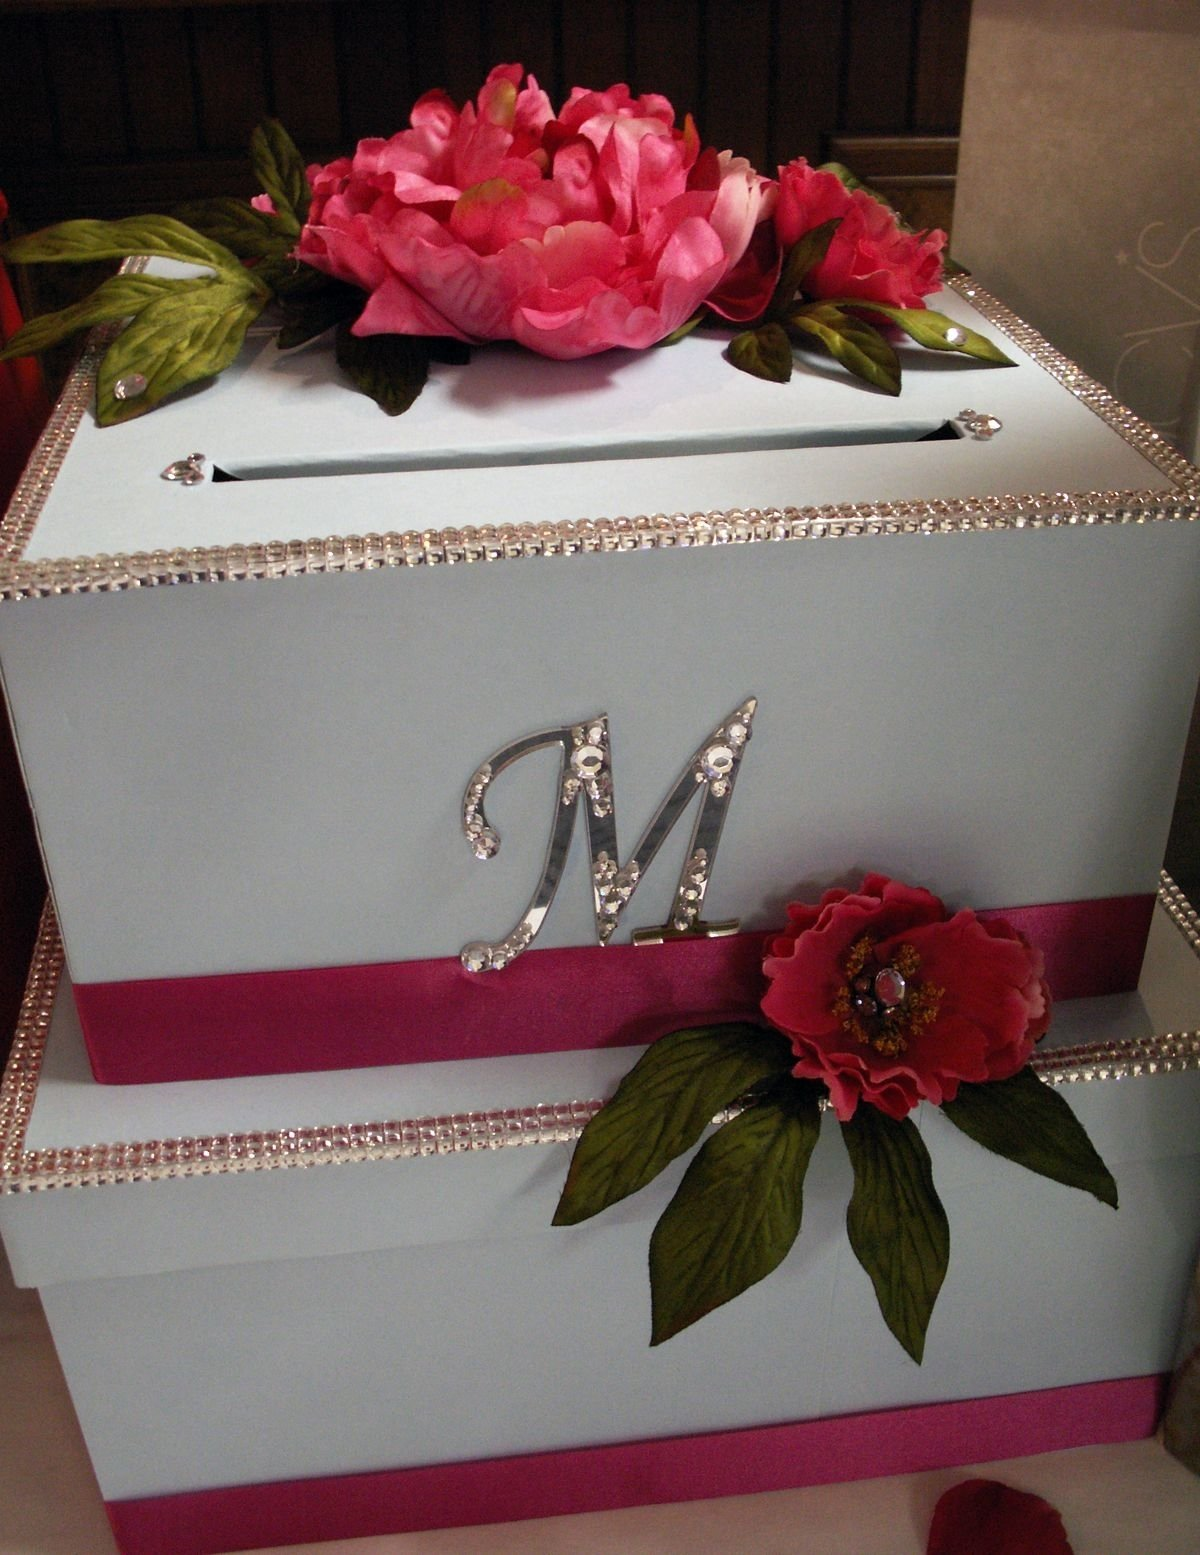 10 Most Popular Card Box Ideas For Wedding diy wedding card box project diy wedding card box diy wedding 2020